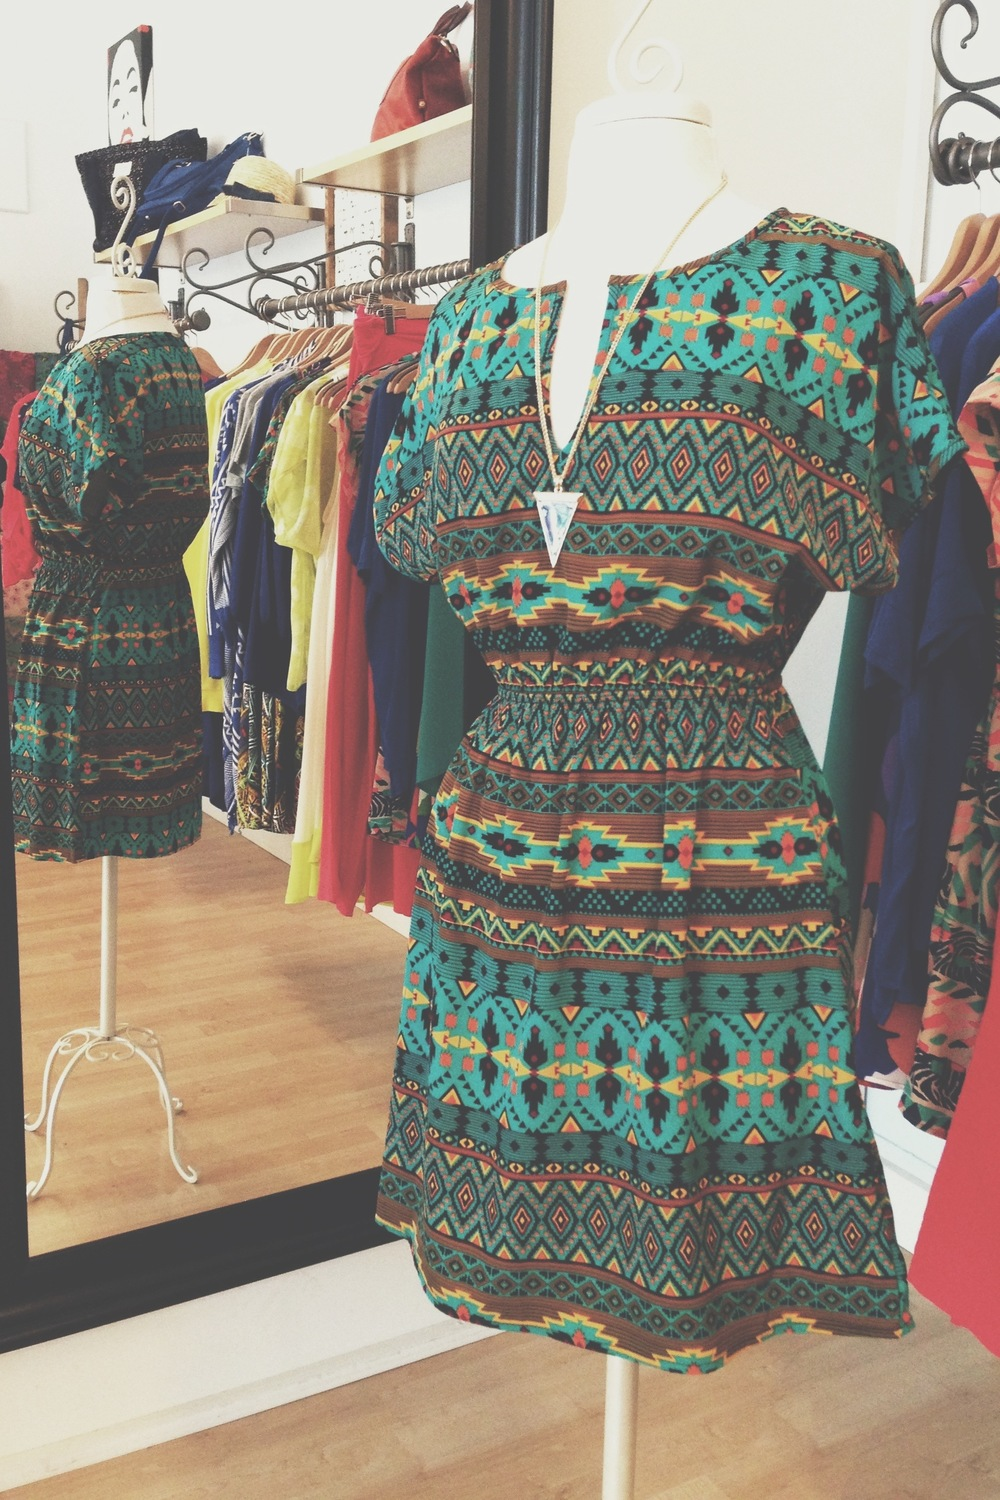 Green Aztec print dress, with arrowhead necklace.